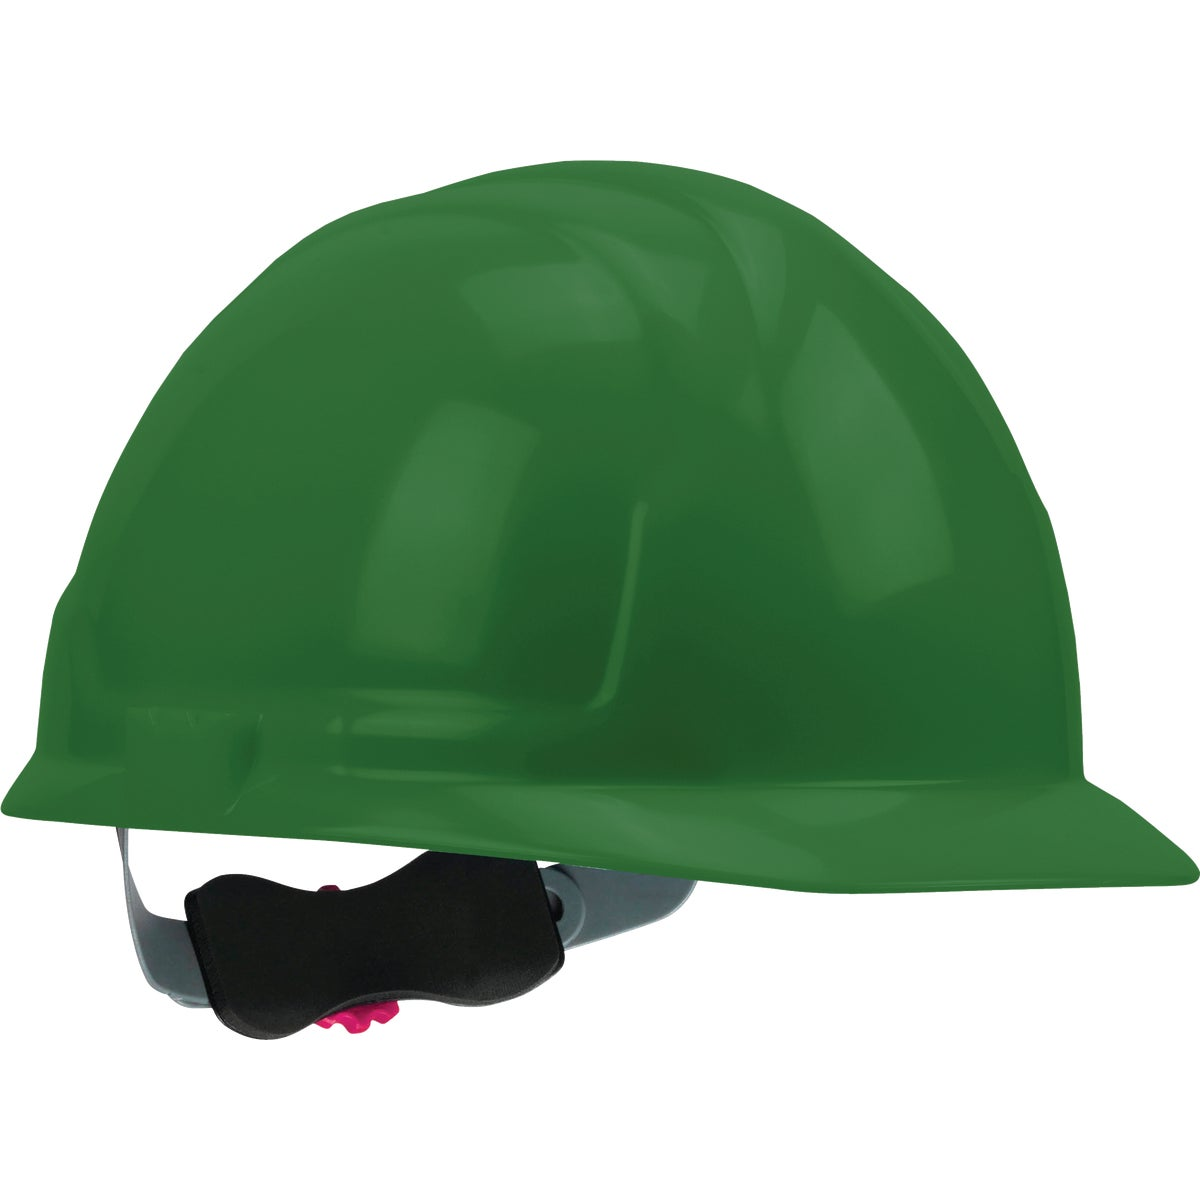 RATCHET GREEN HARD HAT